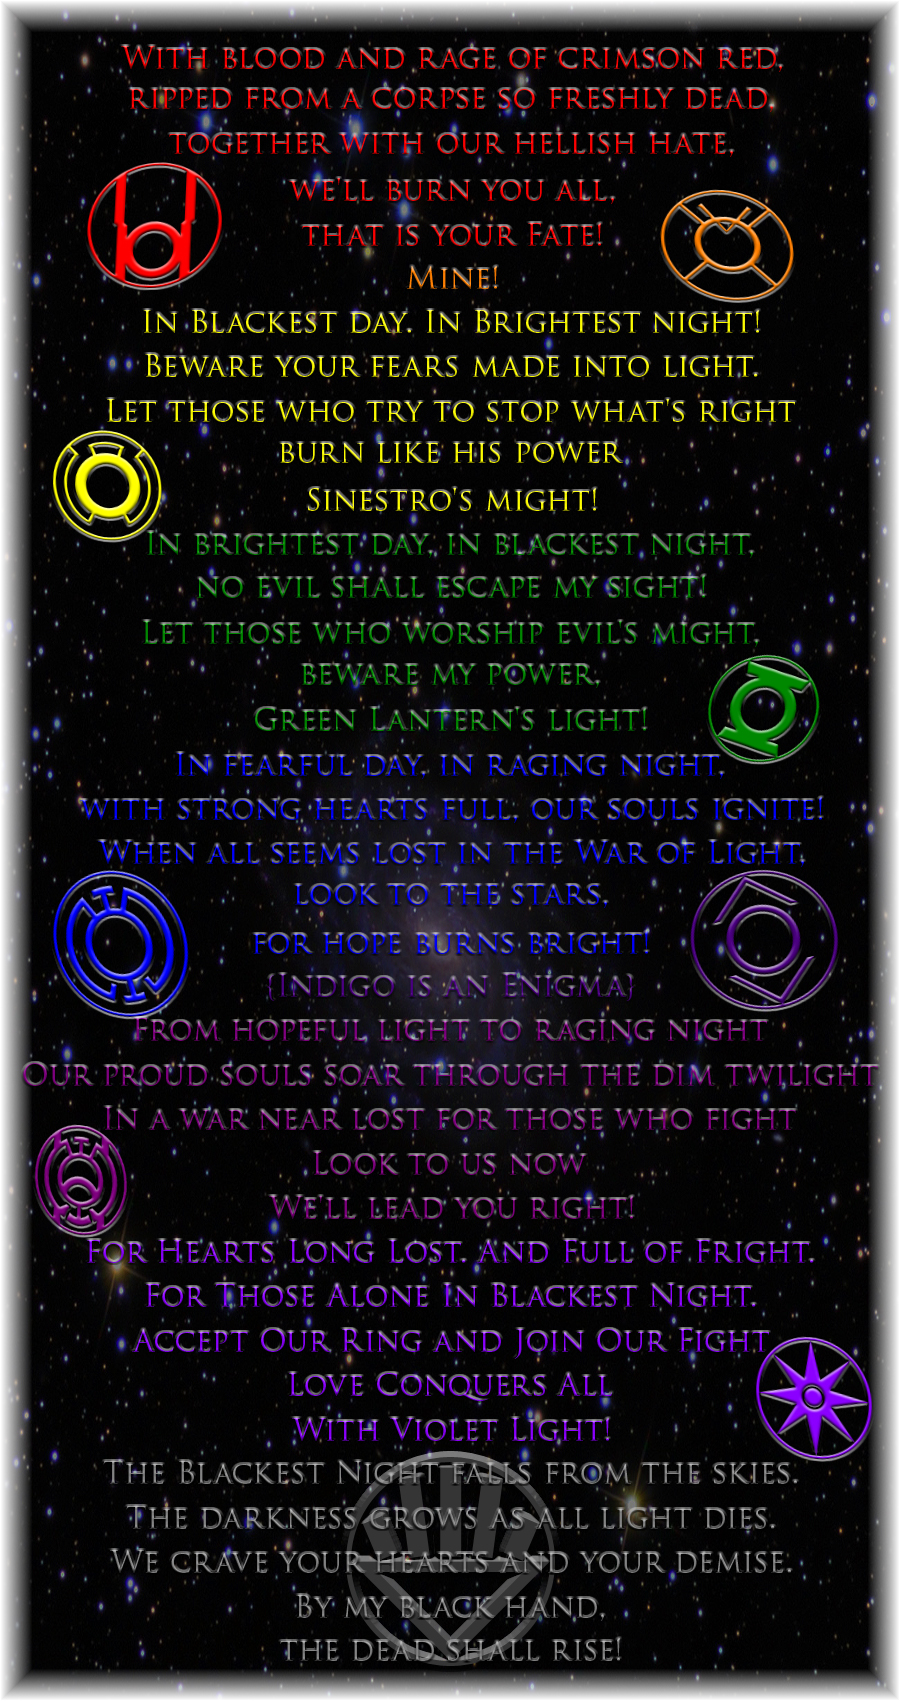 The Lantern Oaths by